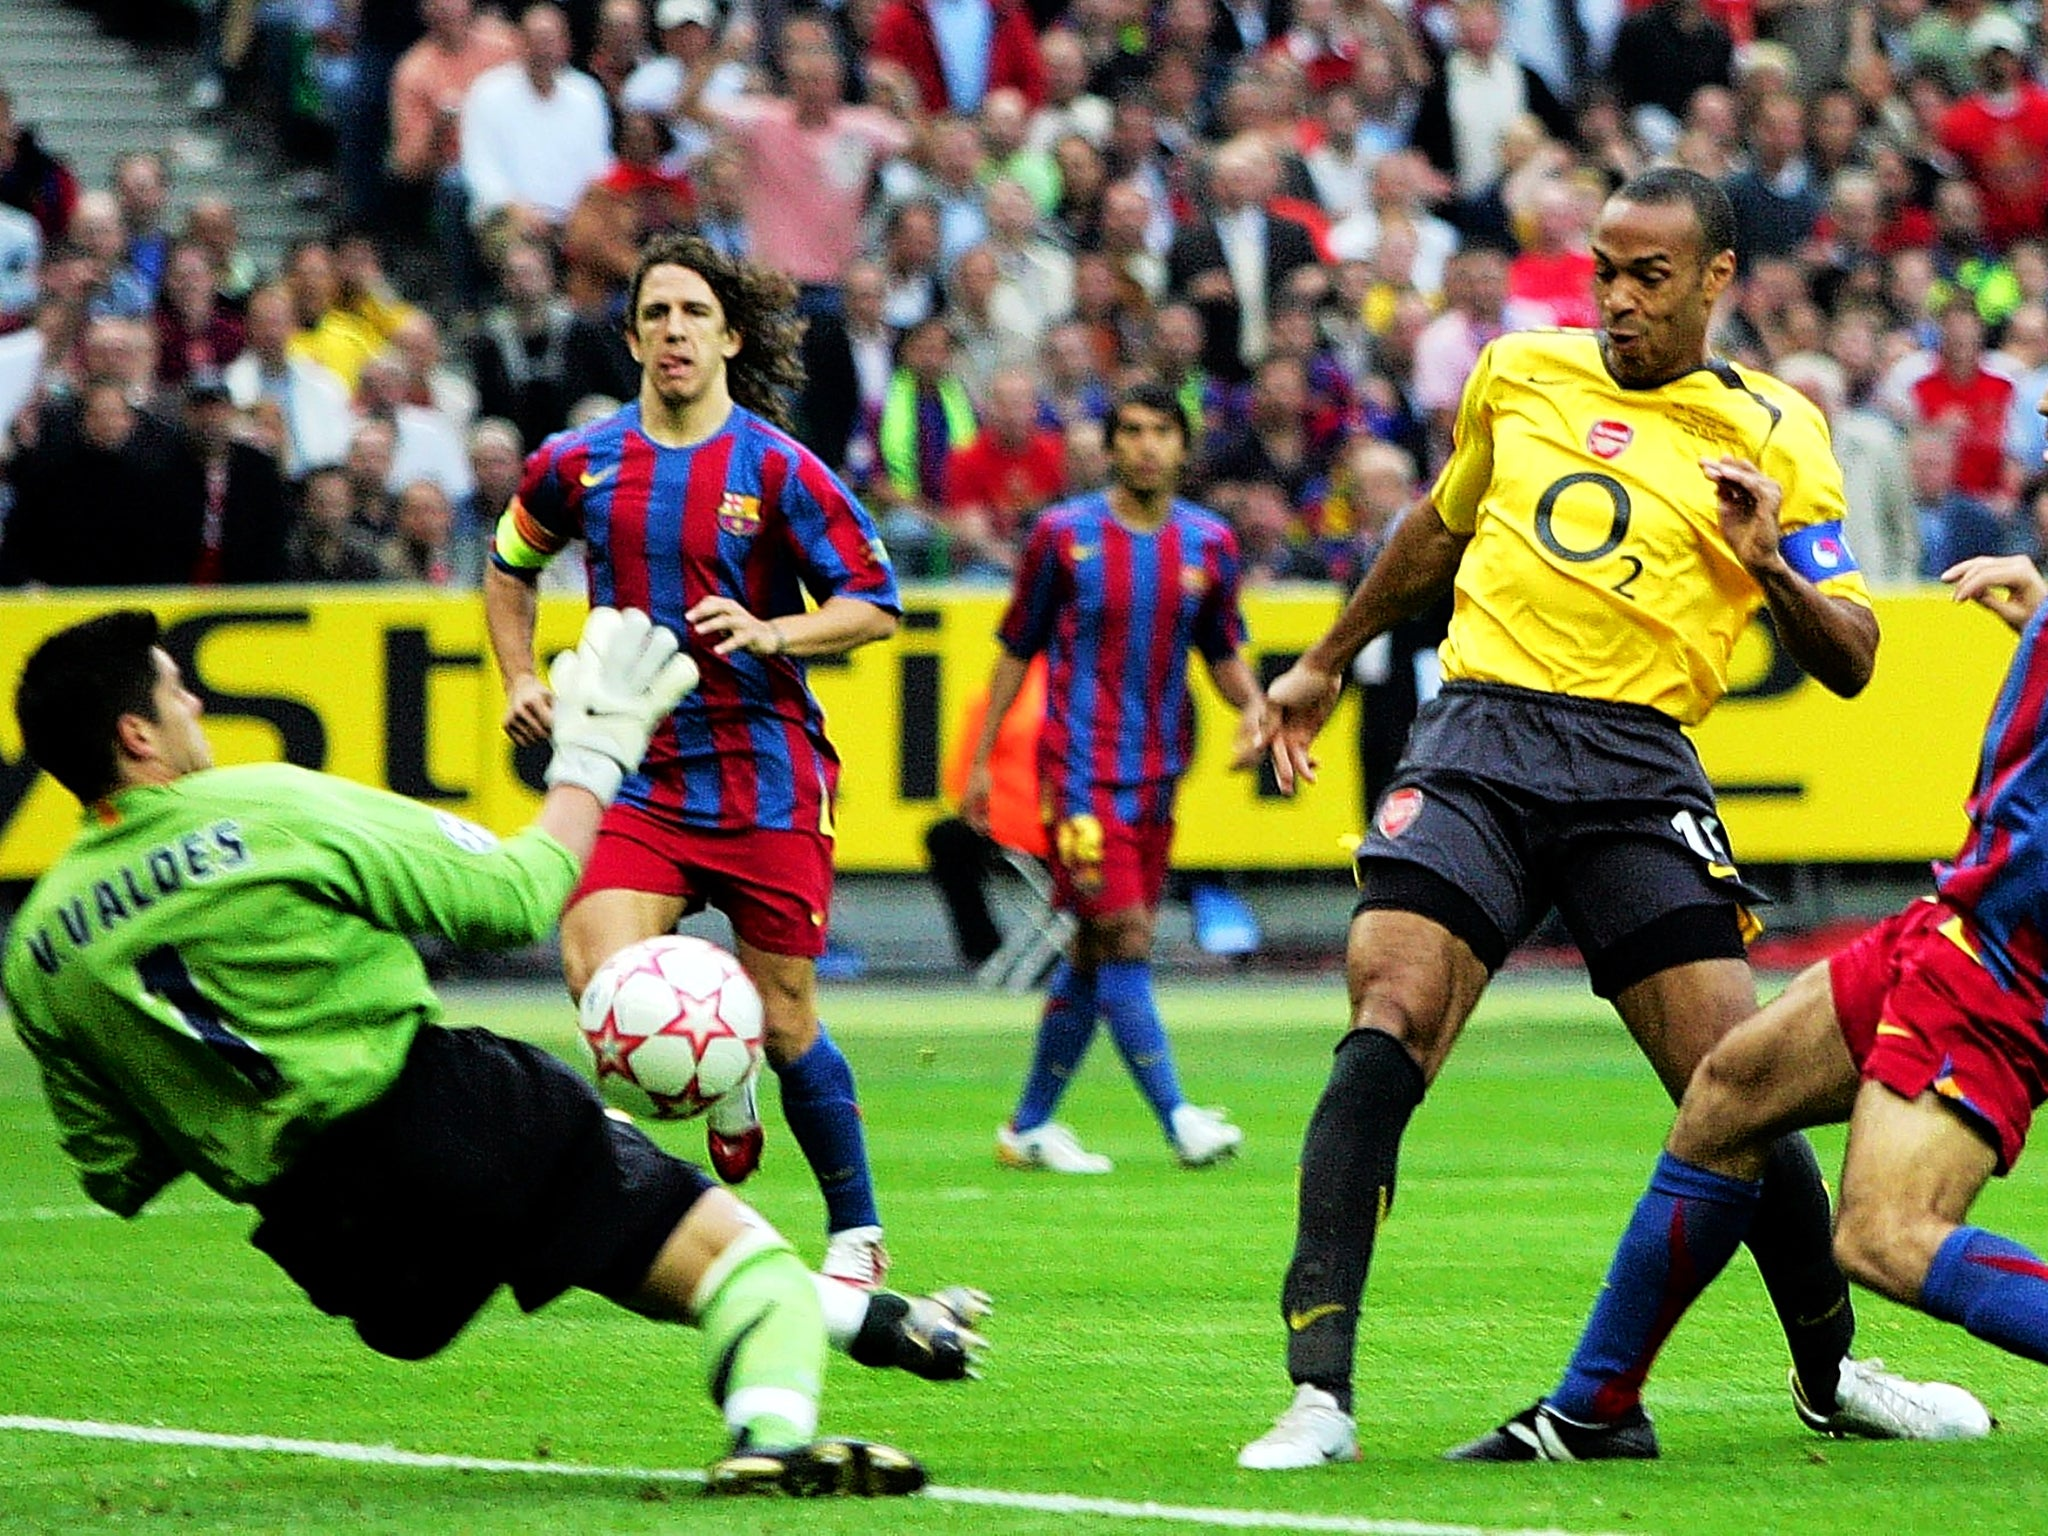 Since the 2006 Champions League final Arsenal and ...